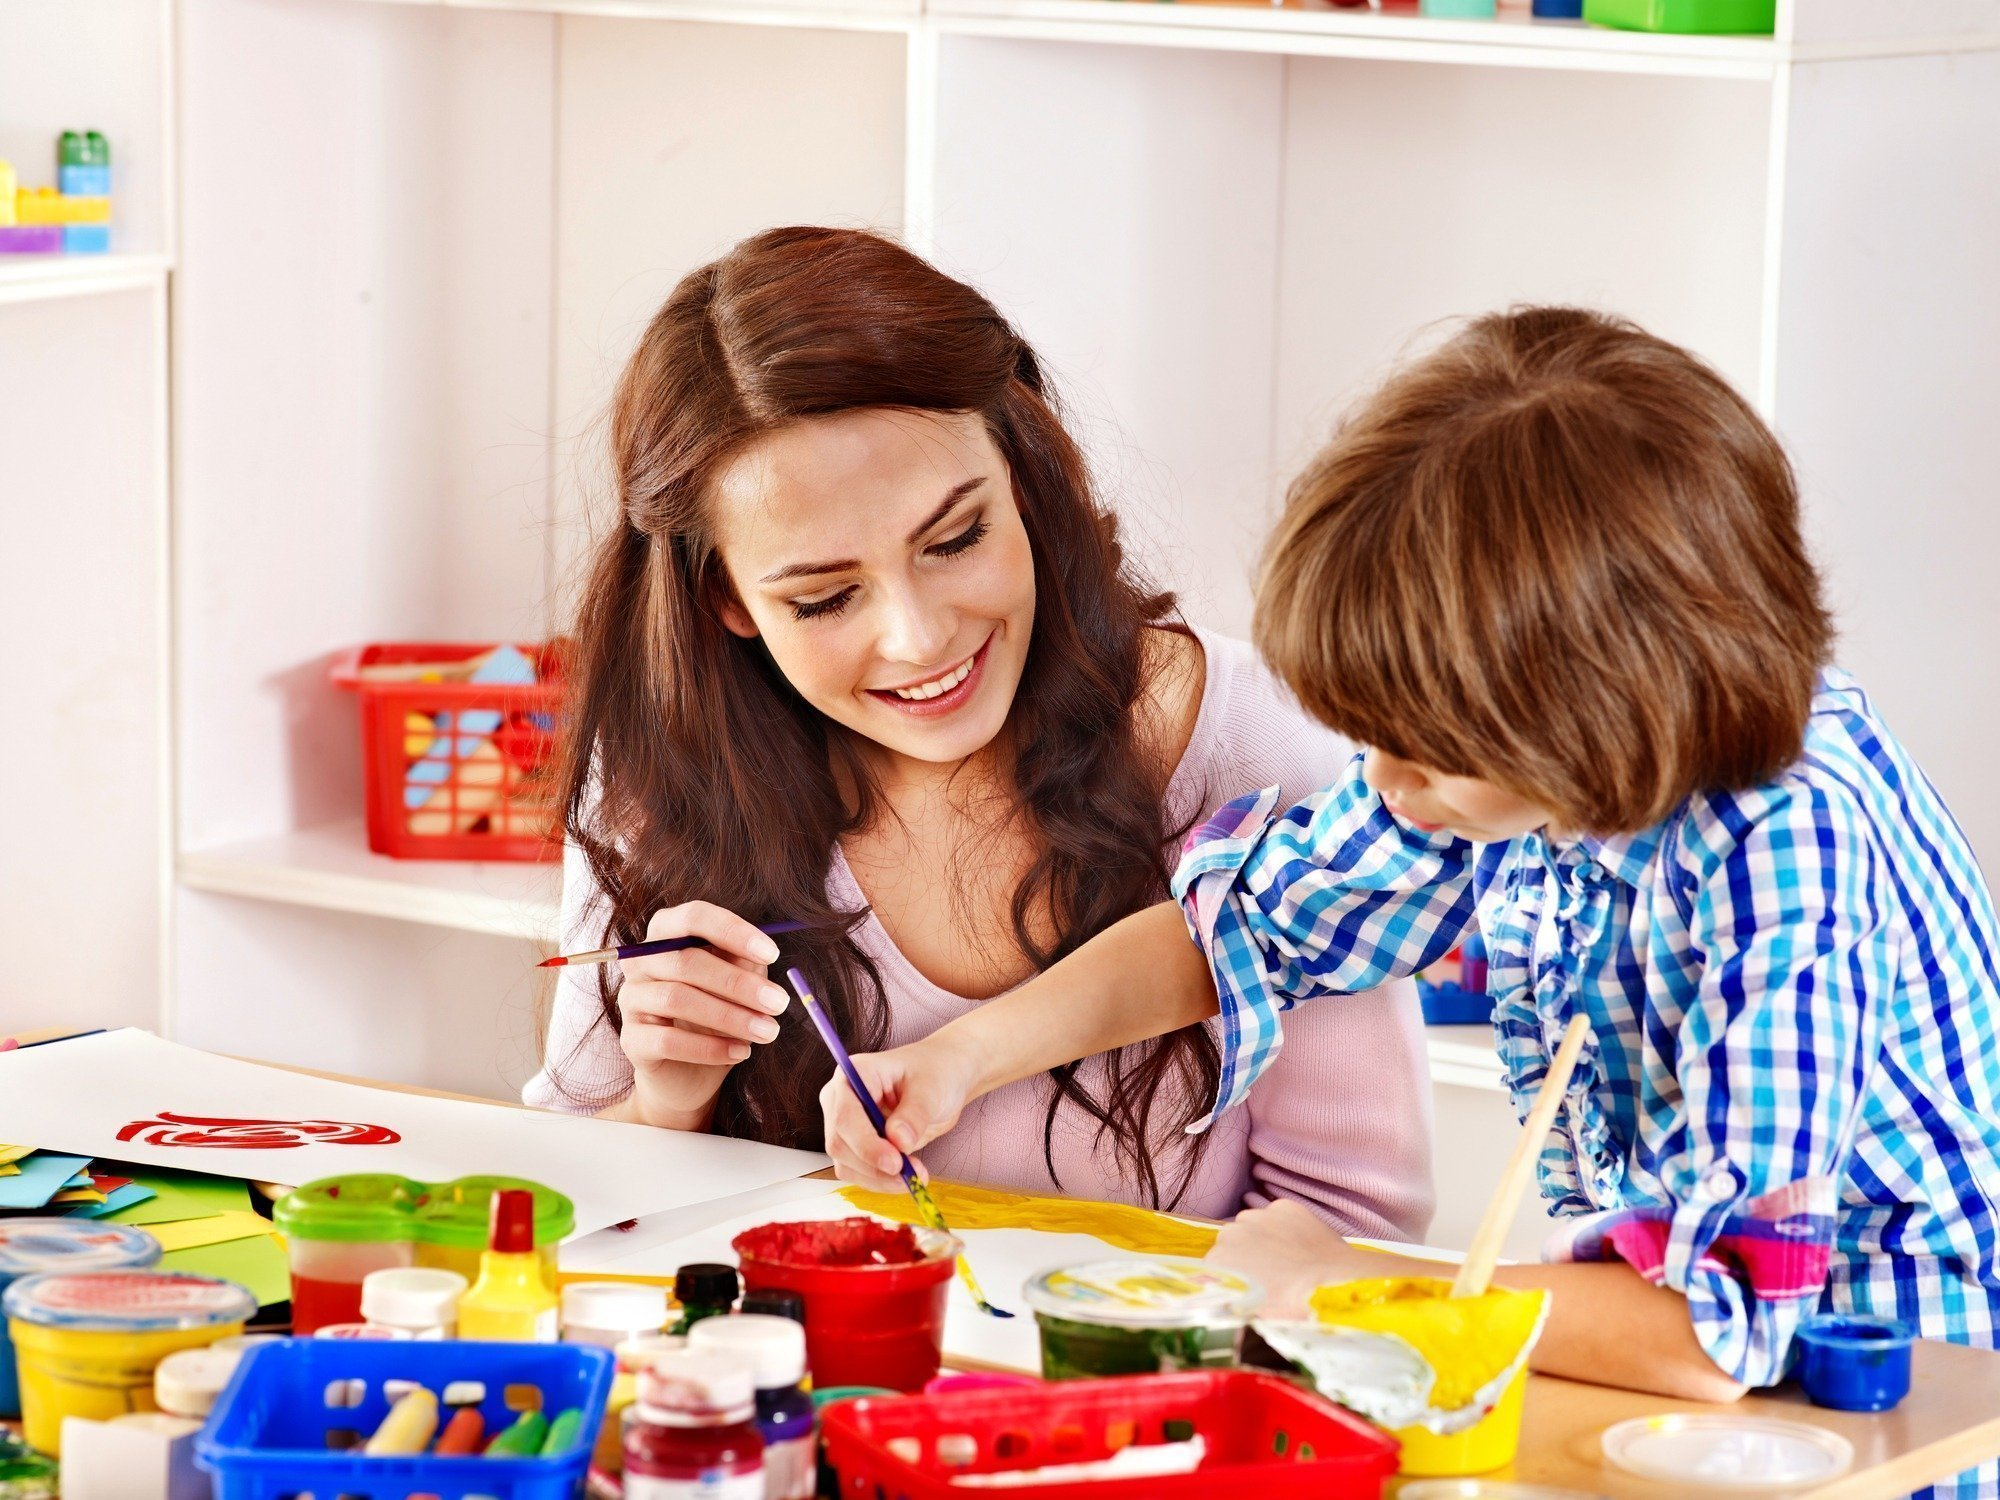 DIY Crafts You Can Do With Your Kids While Staying At Home